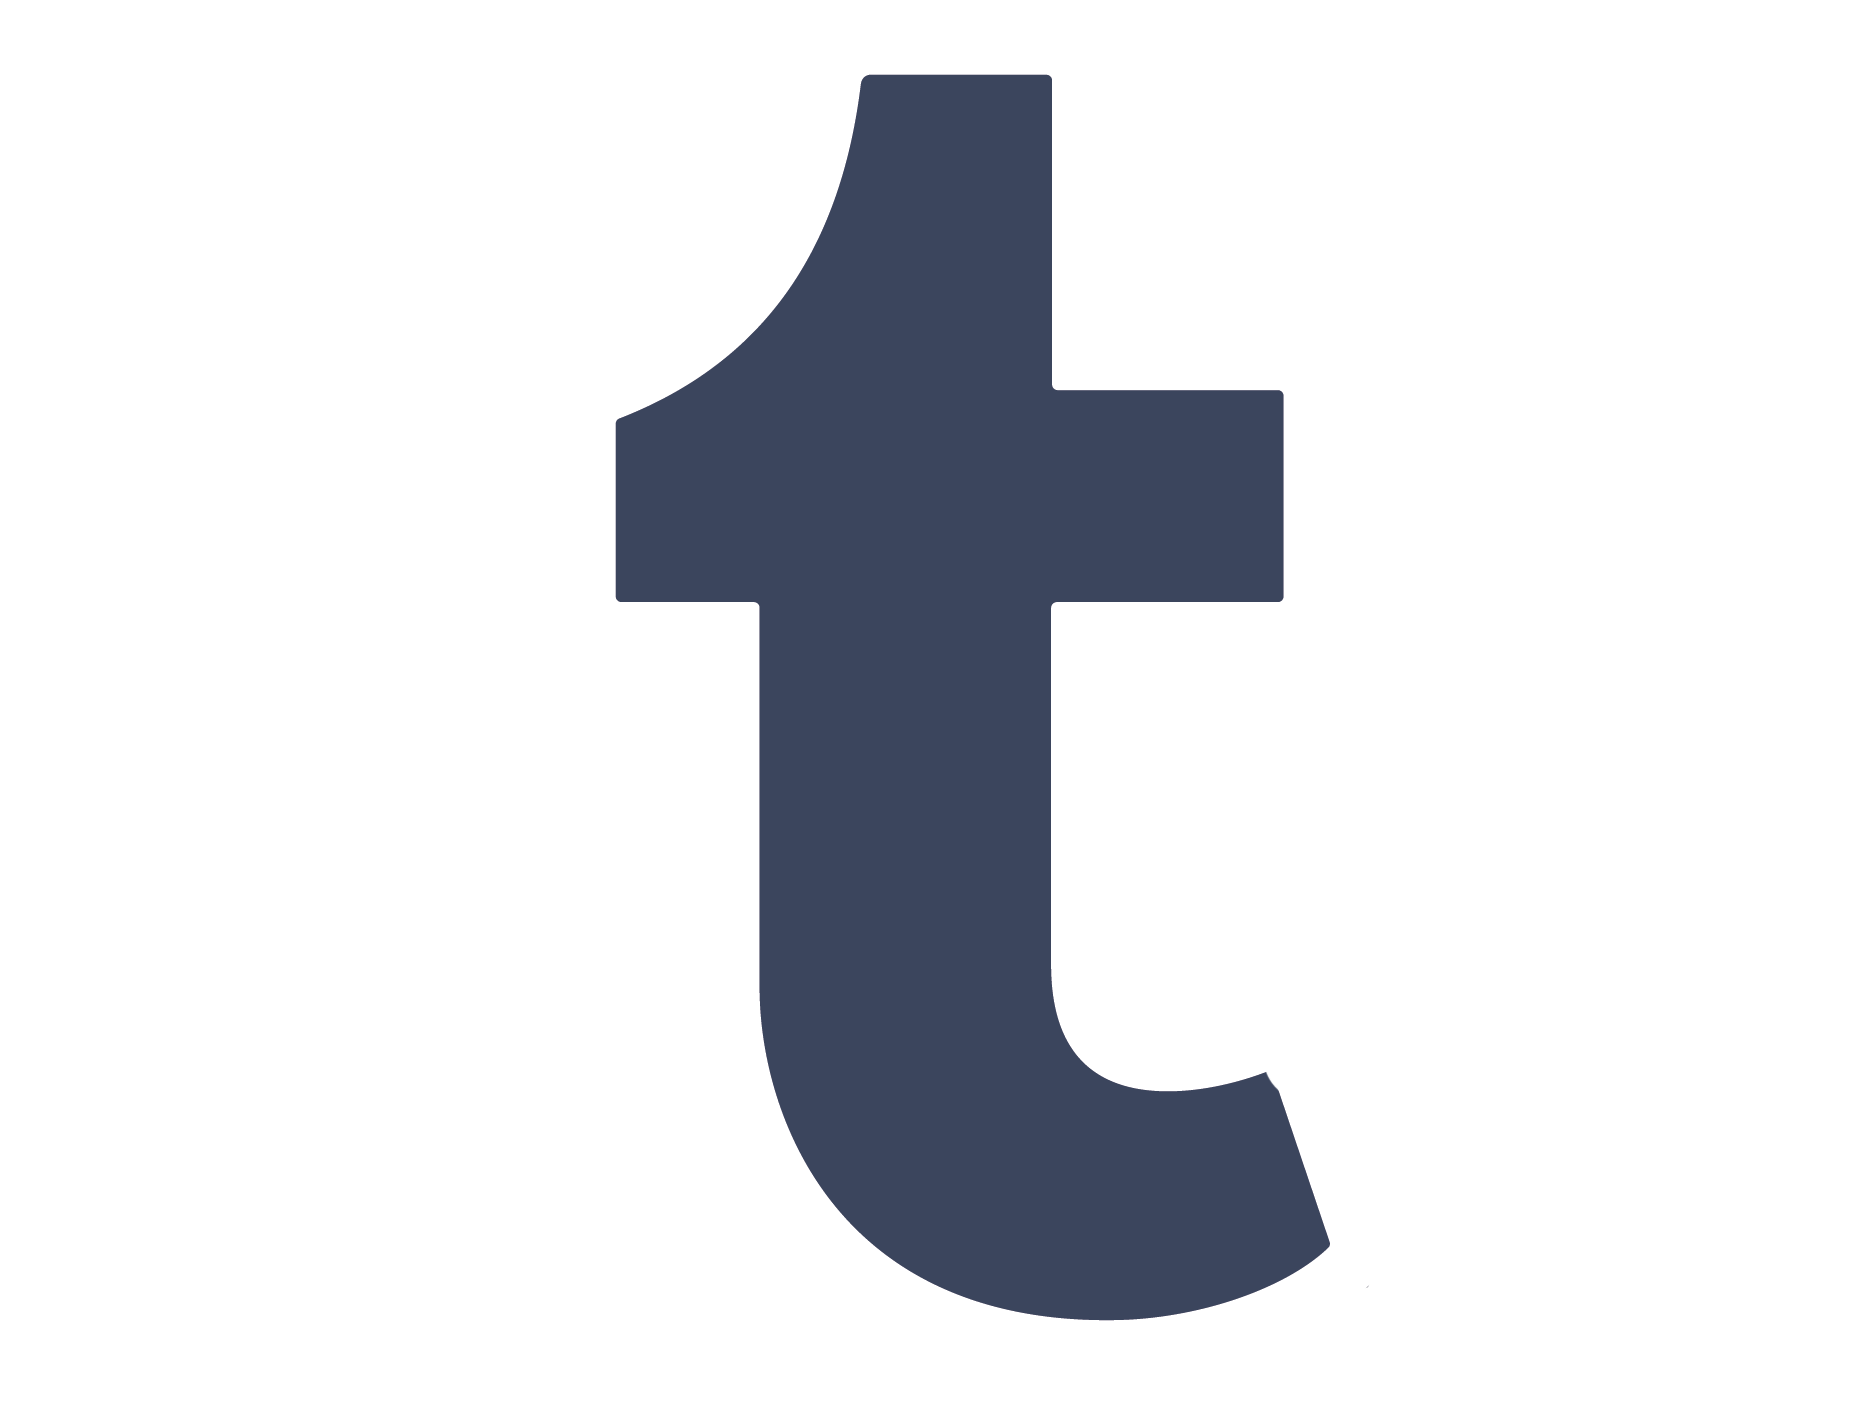 Tumblr Logo - Tumblr Logo, Tumblr Symbol, Meaning, History and Evolution